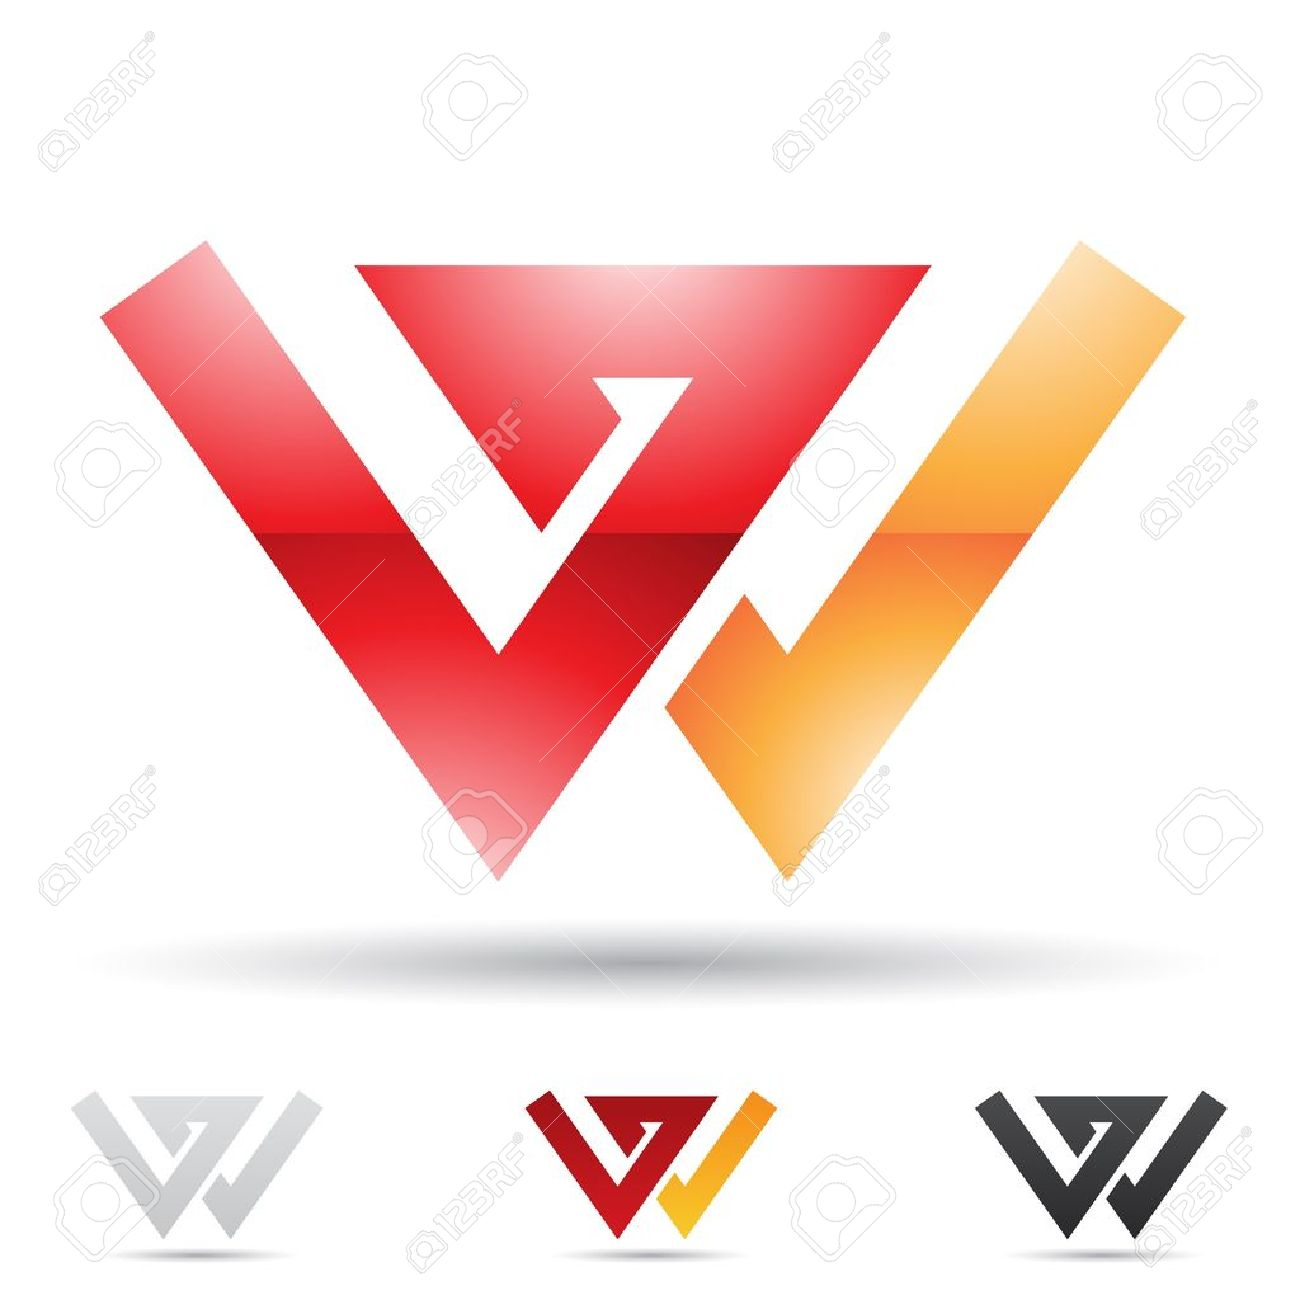 illustration of abstract icons based on the letter W Stock Vector - 14621365